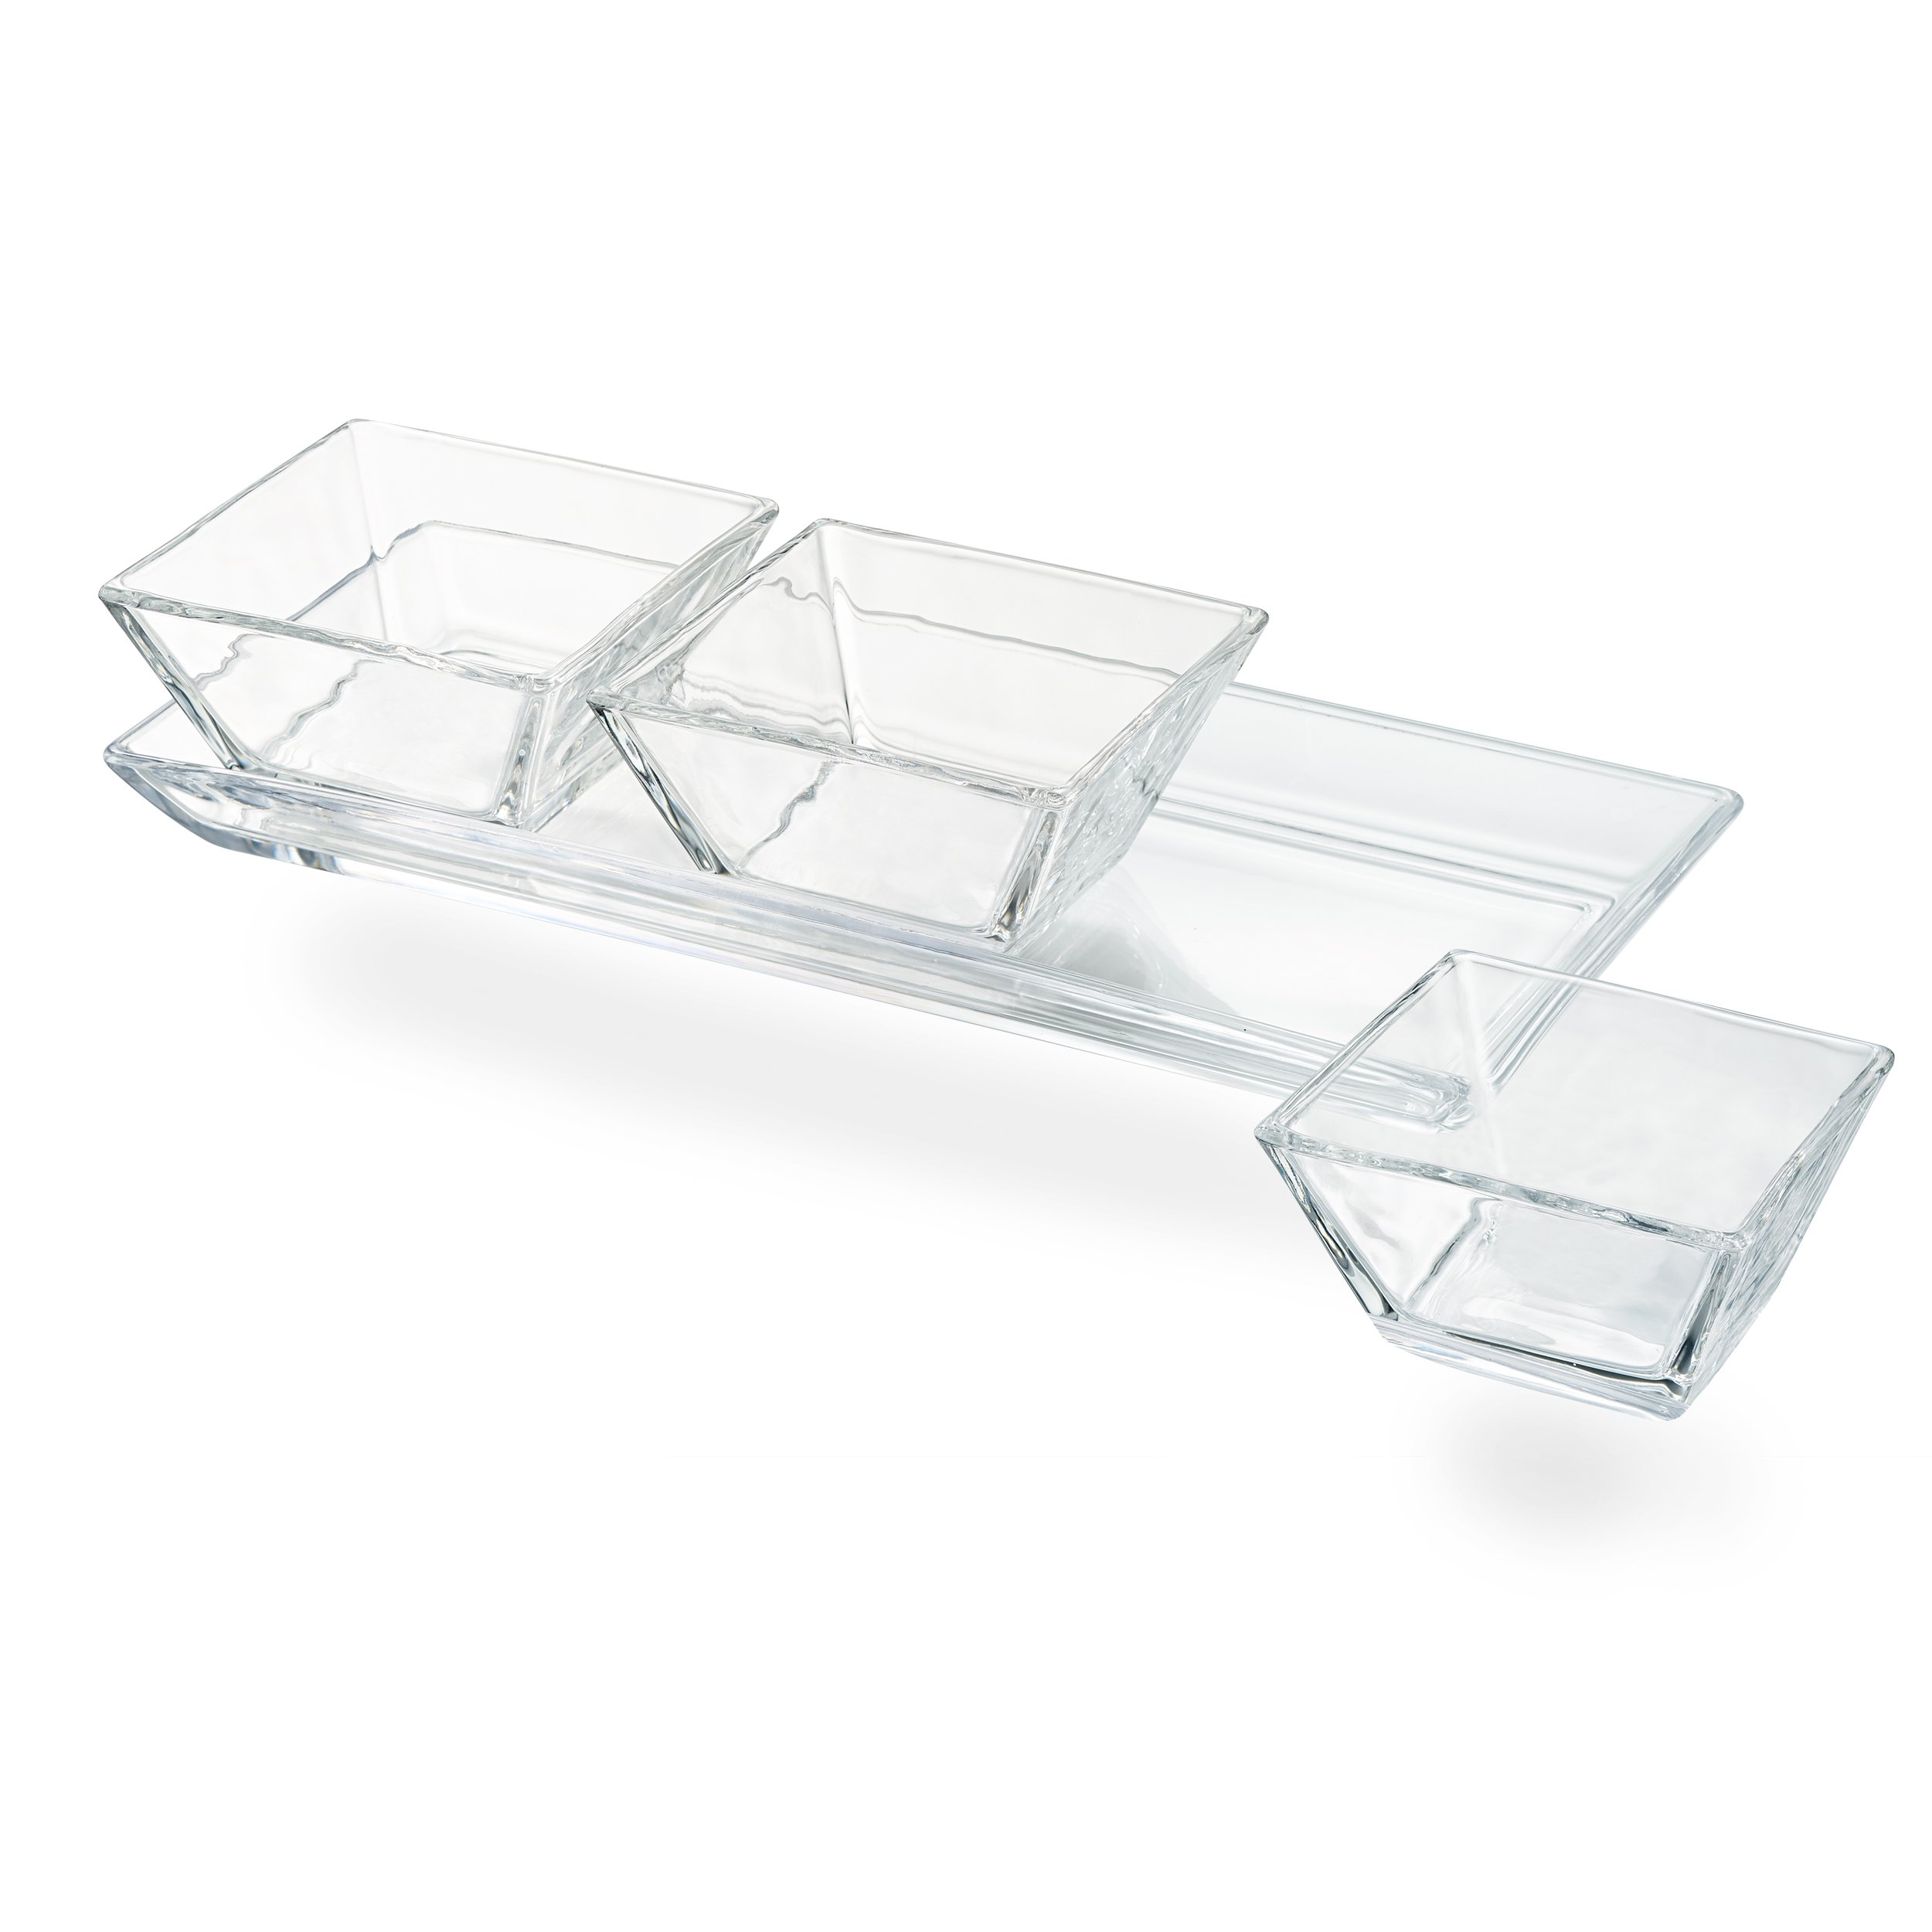 Artland Cortland 3 Section Tray with Square Bowls, Small, Glass